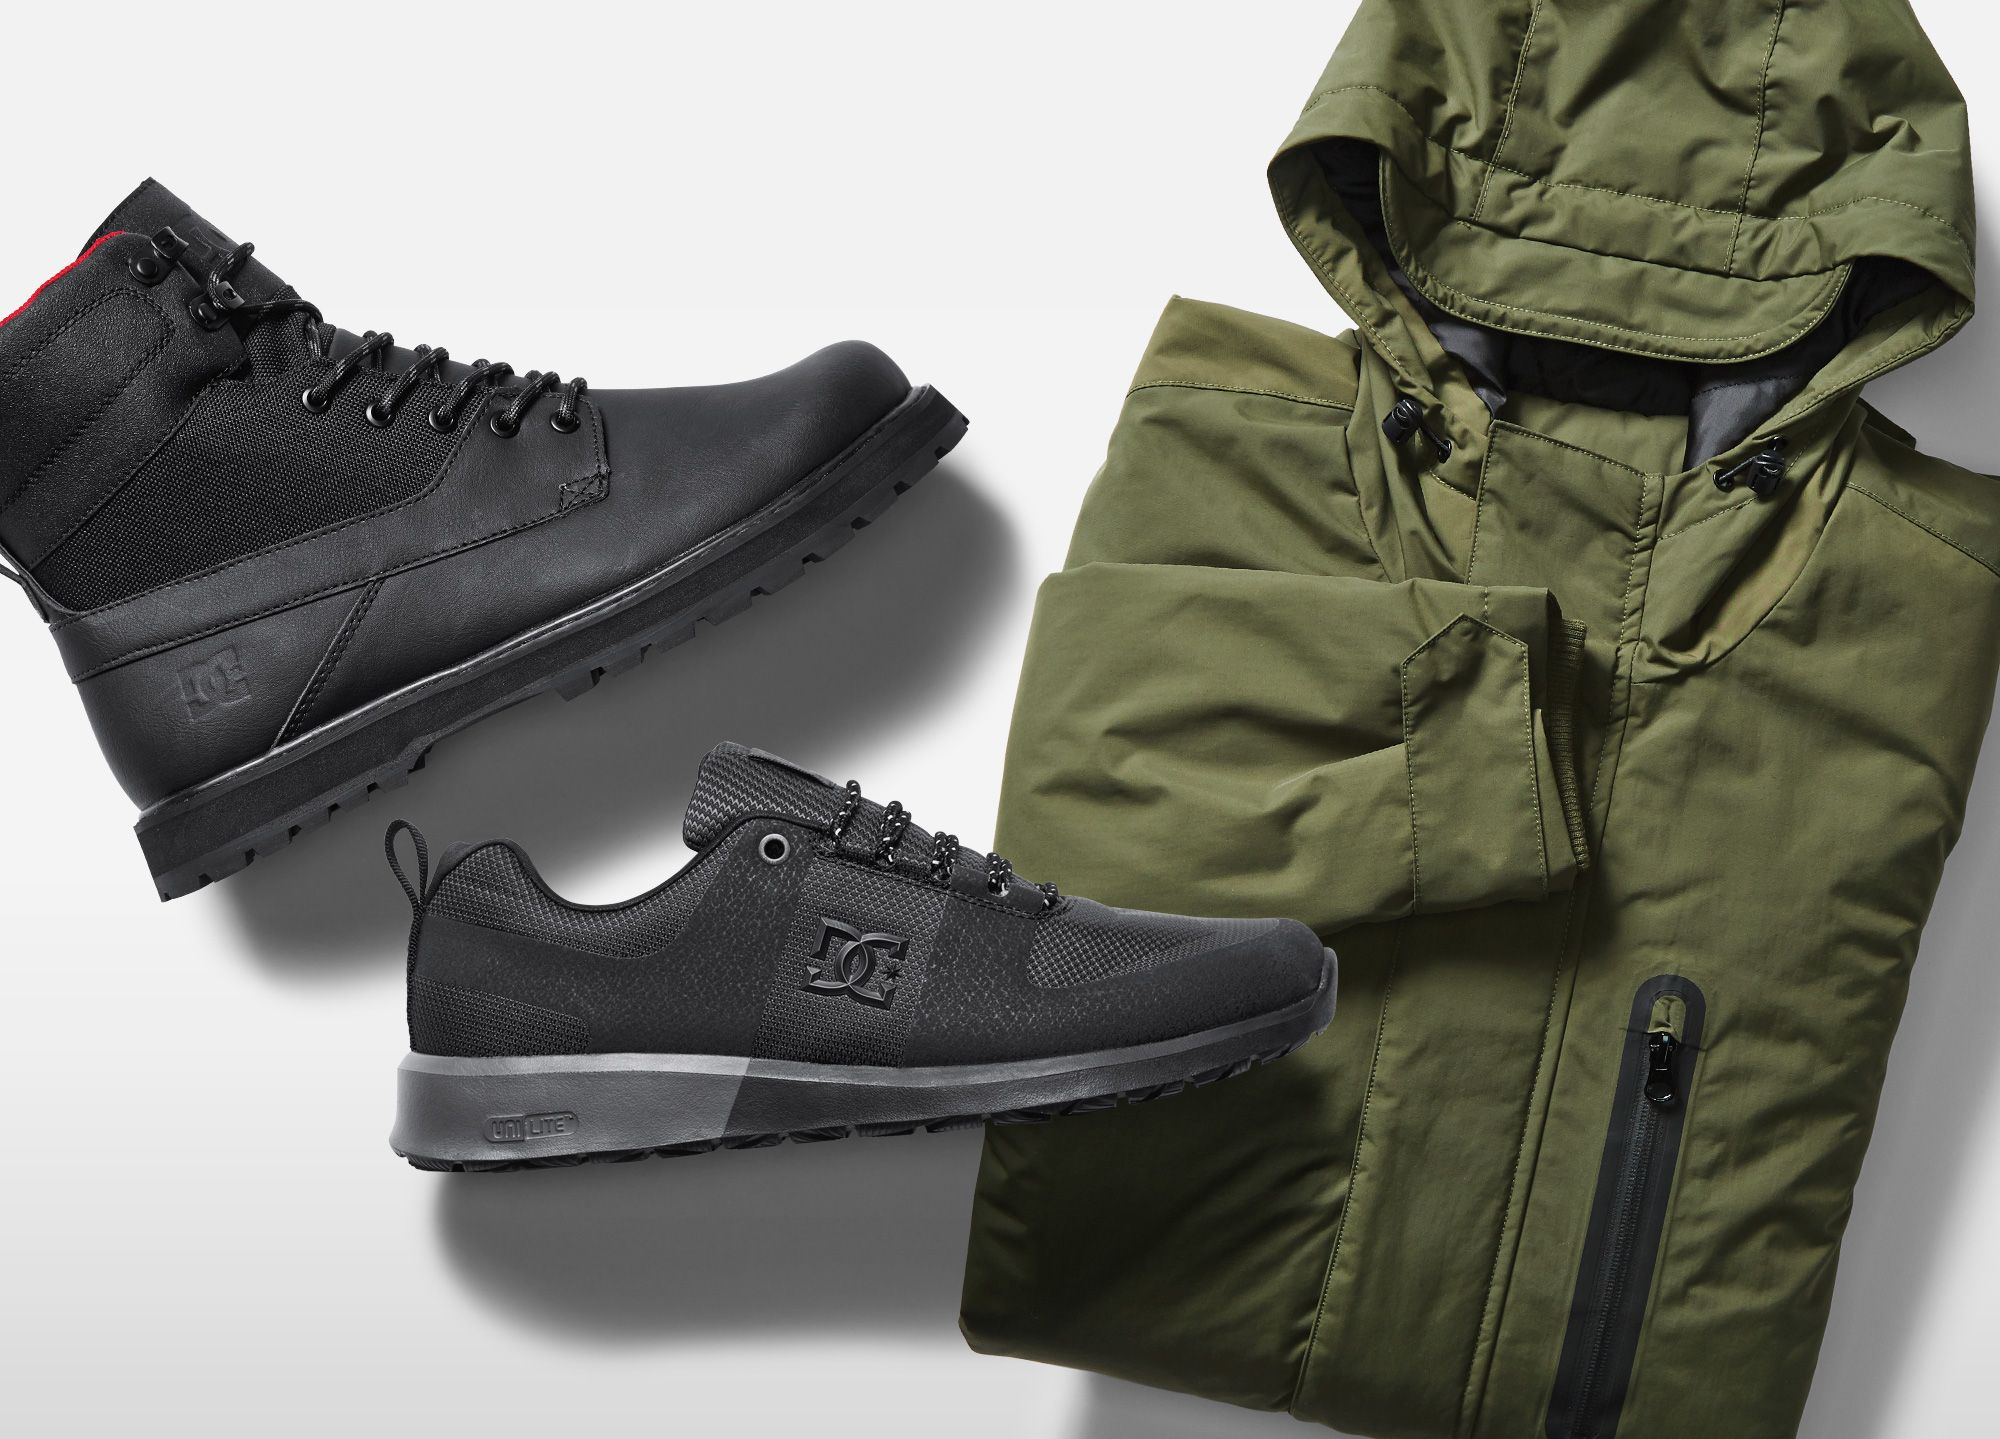 86f34685179 The Militant Collection features the Grasmere parka, Lynx Lite R and ...